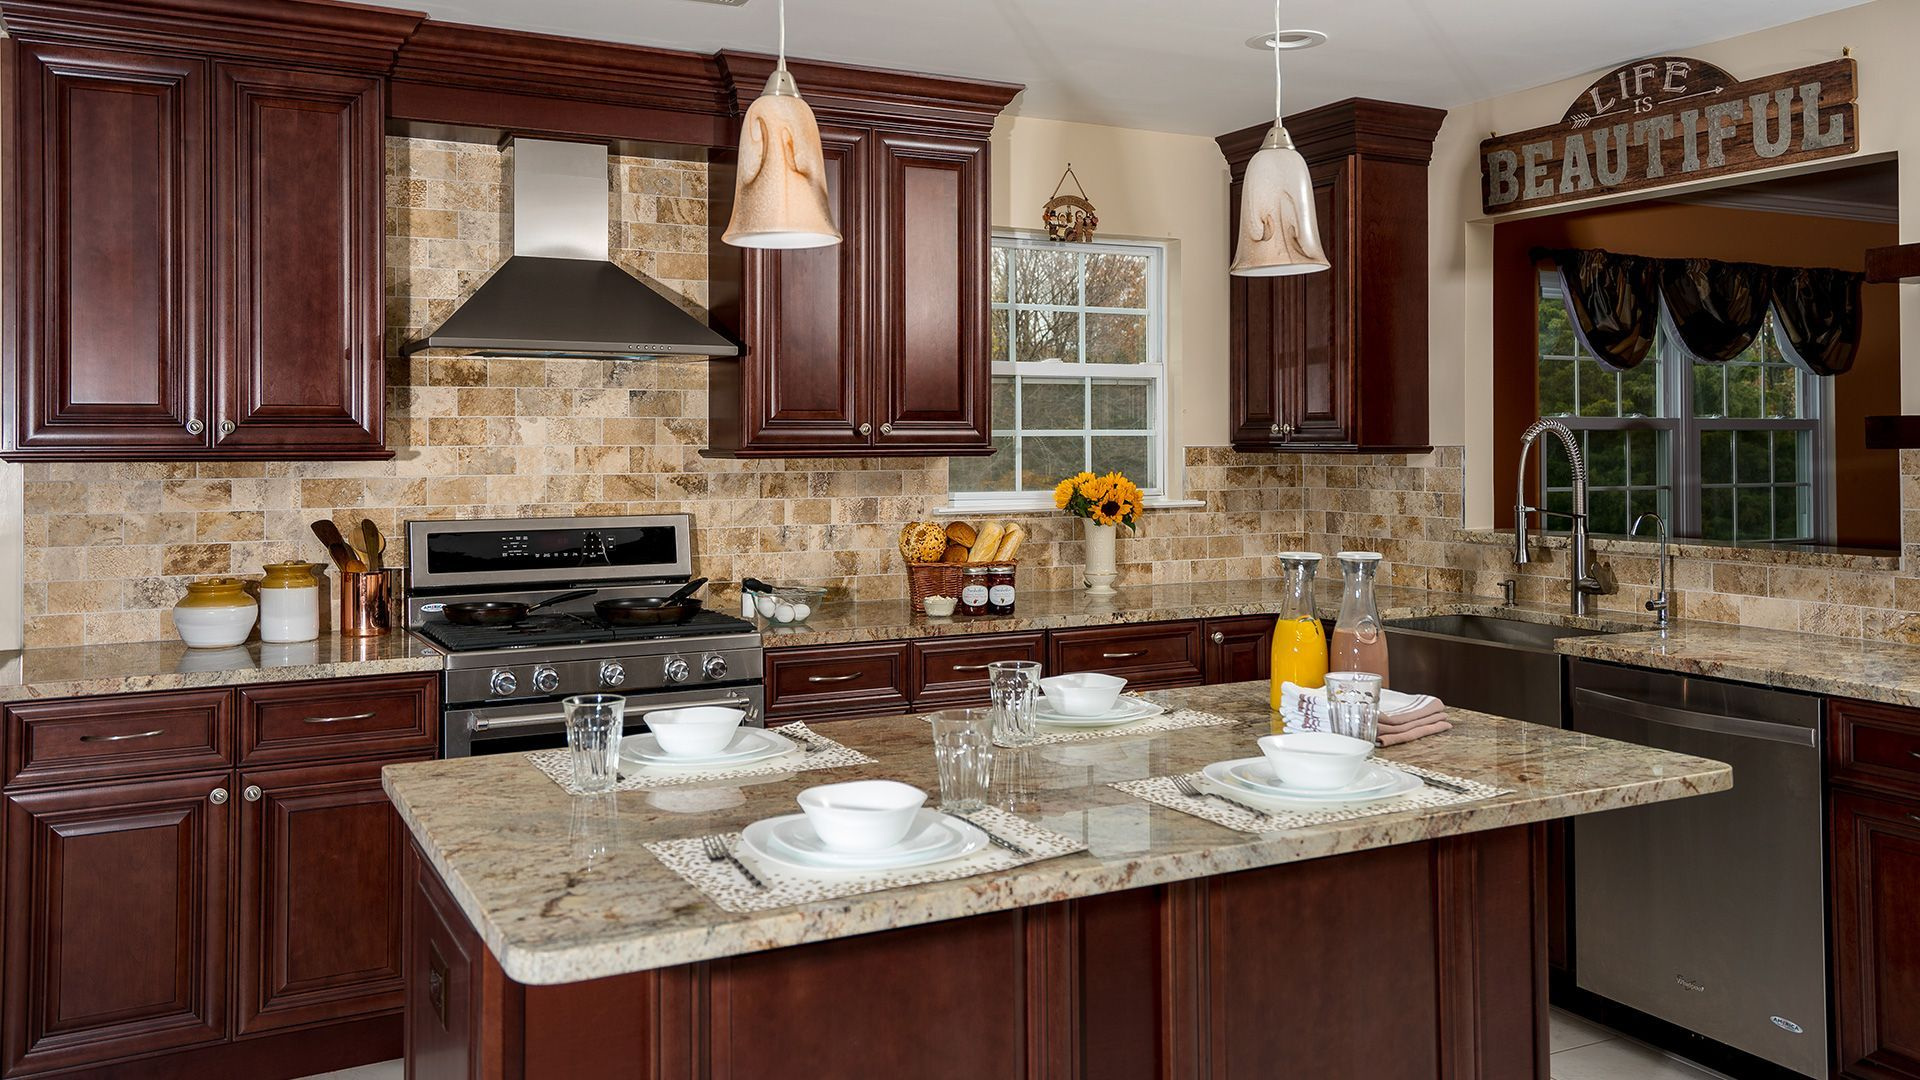 Best Fabuwood Cabinets For A Fabulous Kitchen Update Yours 640 x 480